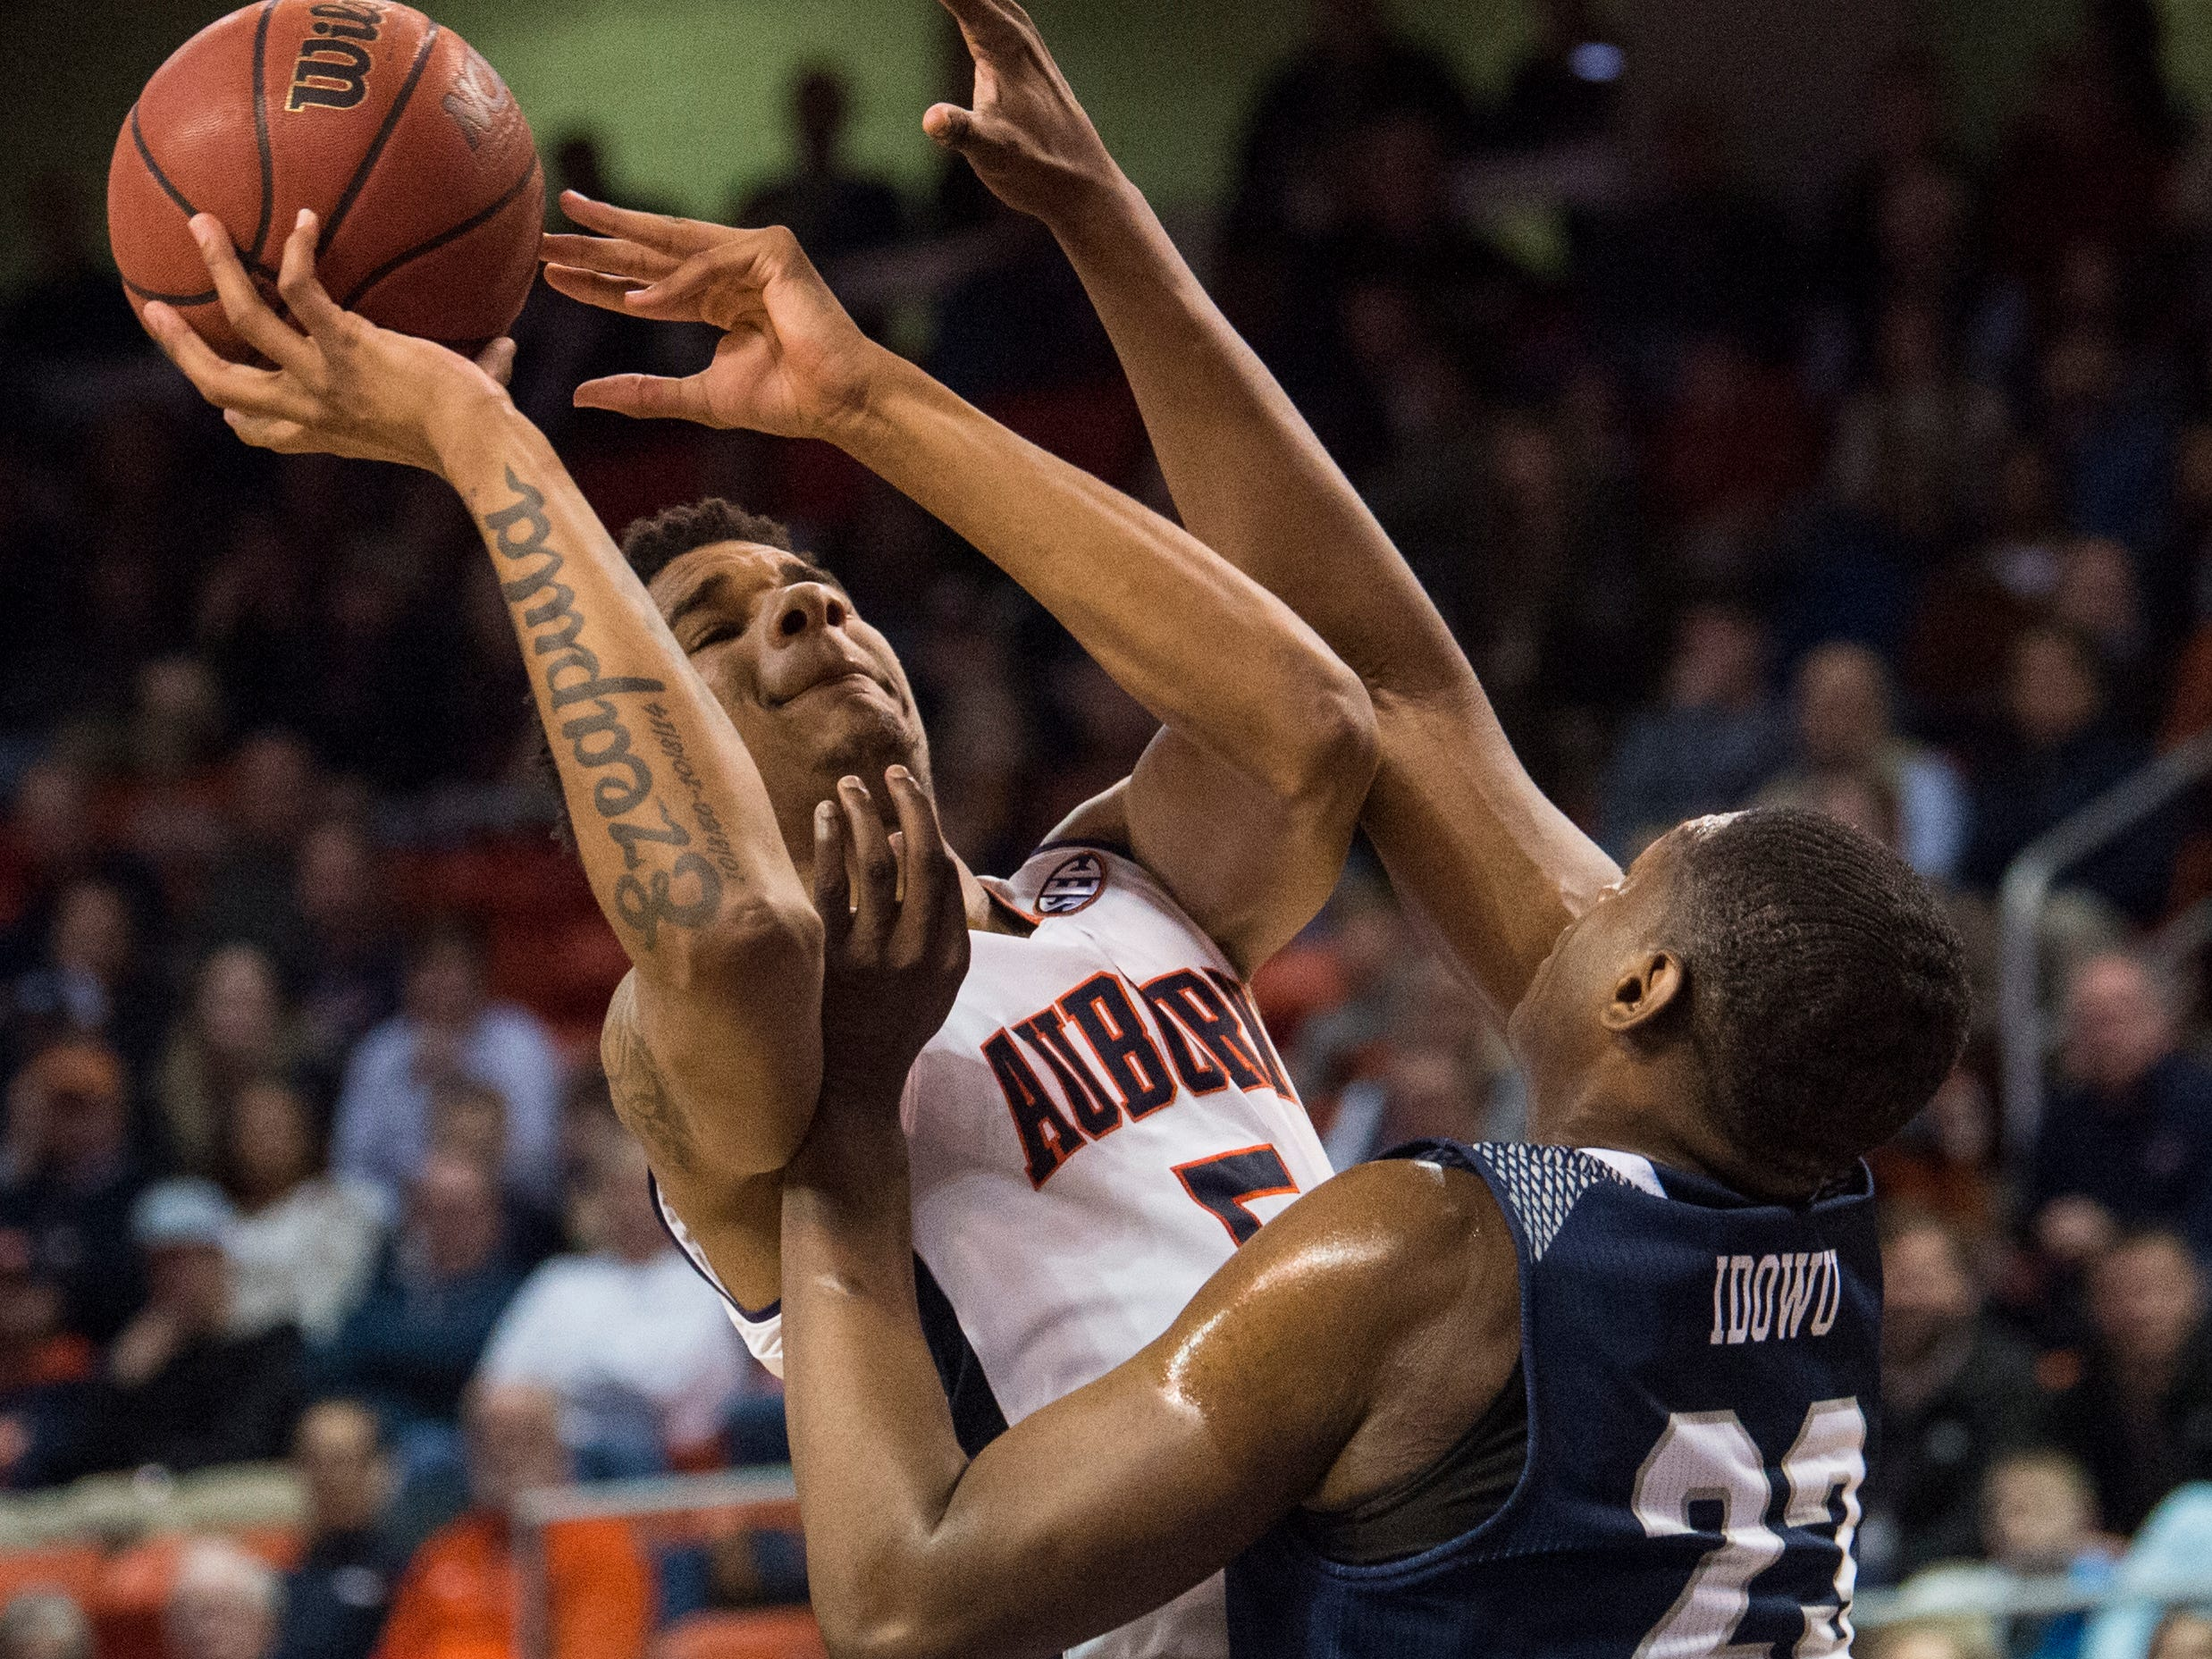 Auburn forward Chuma Okeke (5) goes up for a layup over Saint Peter's forward Samuel Idowu (23) at Auburn Arena in Auburn, Ala., on Wednesday, Nov. 28, 2018. Auburn defeated Saint Peter's 99-49.